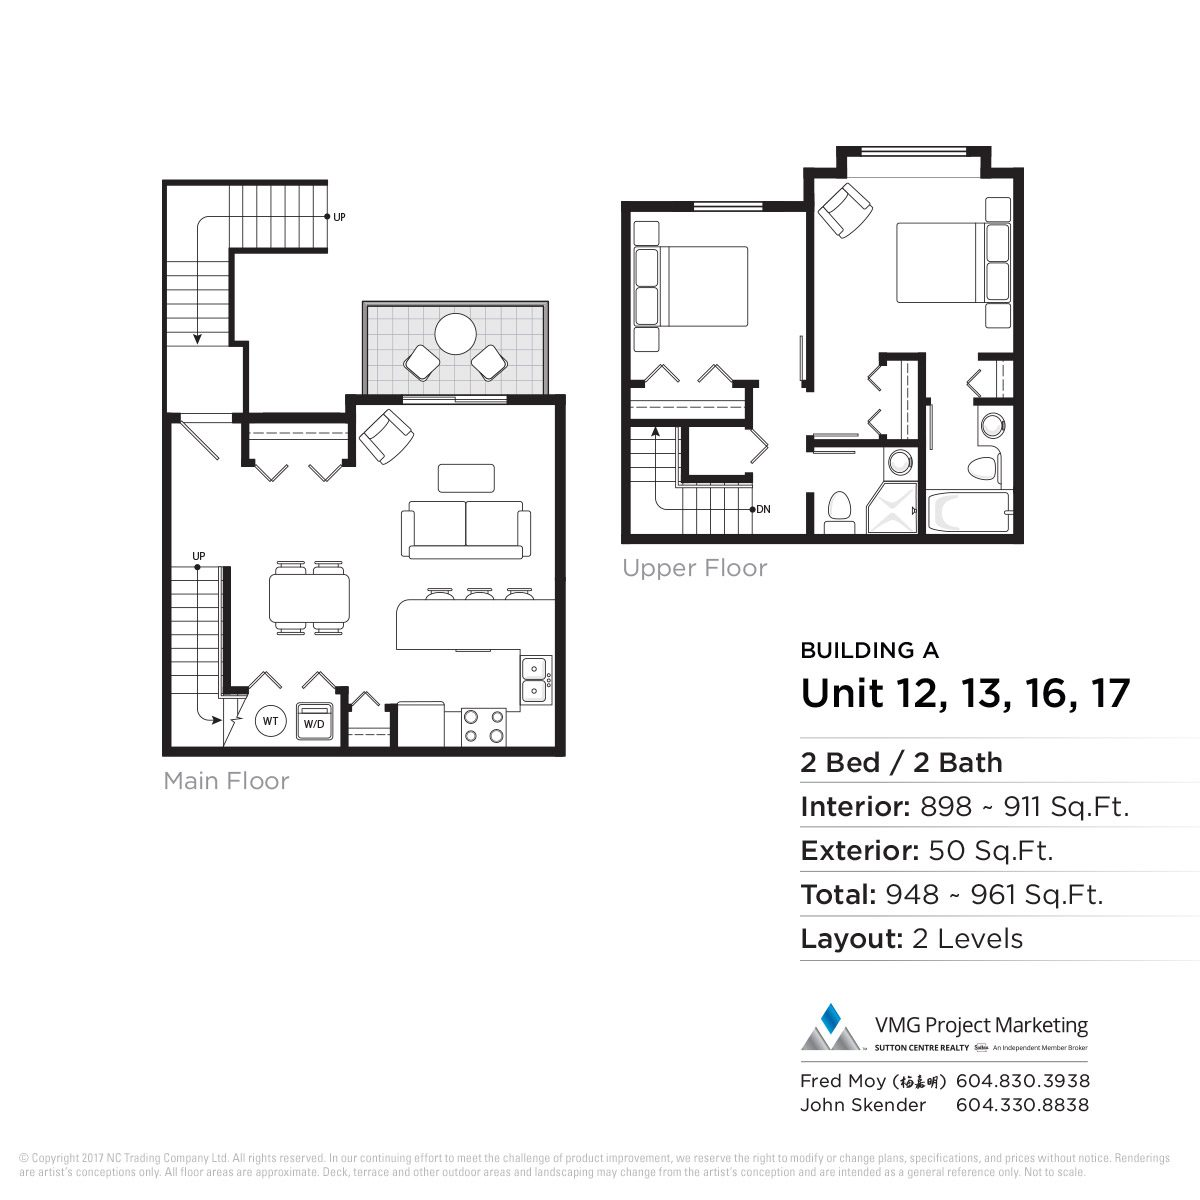 parkview-floorplans-unit-12-13-16-17-2017-07-14